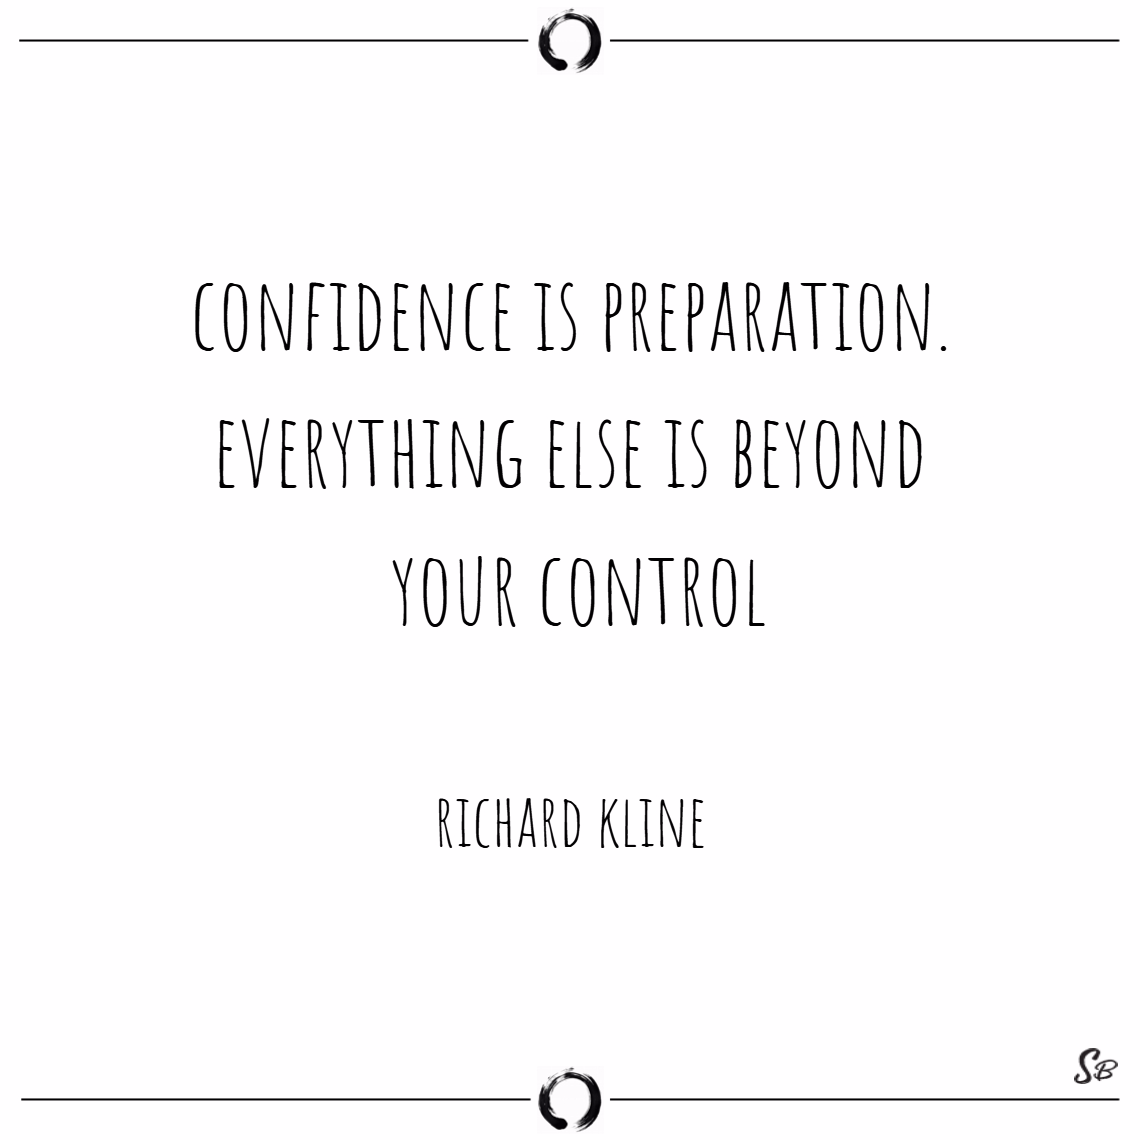 Confidence is preparation. everything else is beyond your control. – richard kline